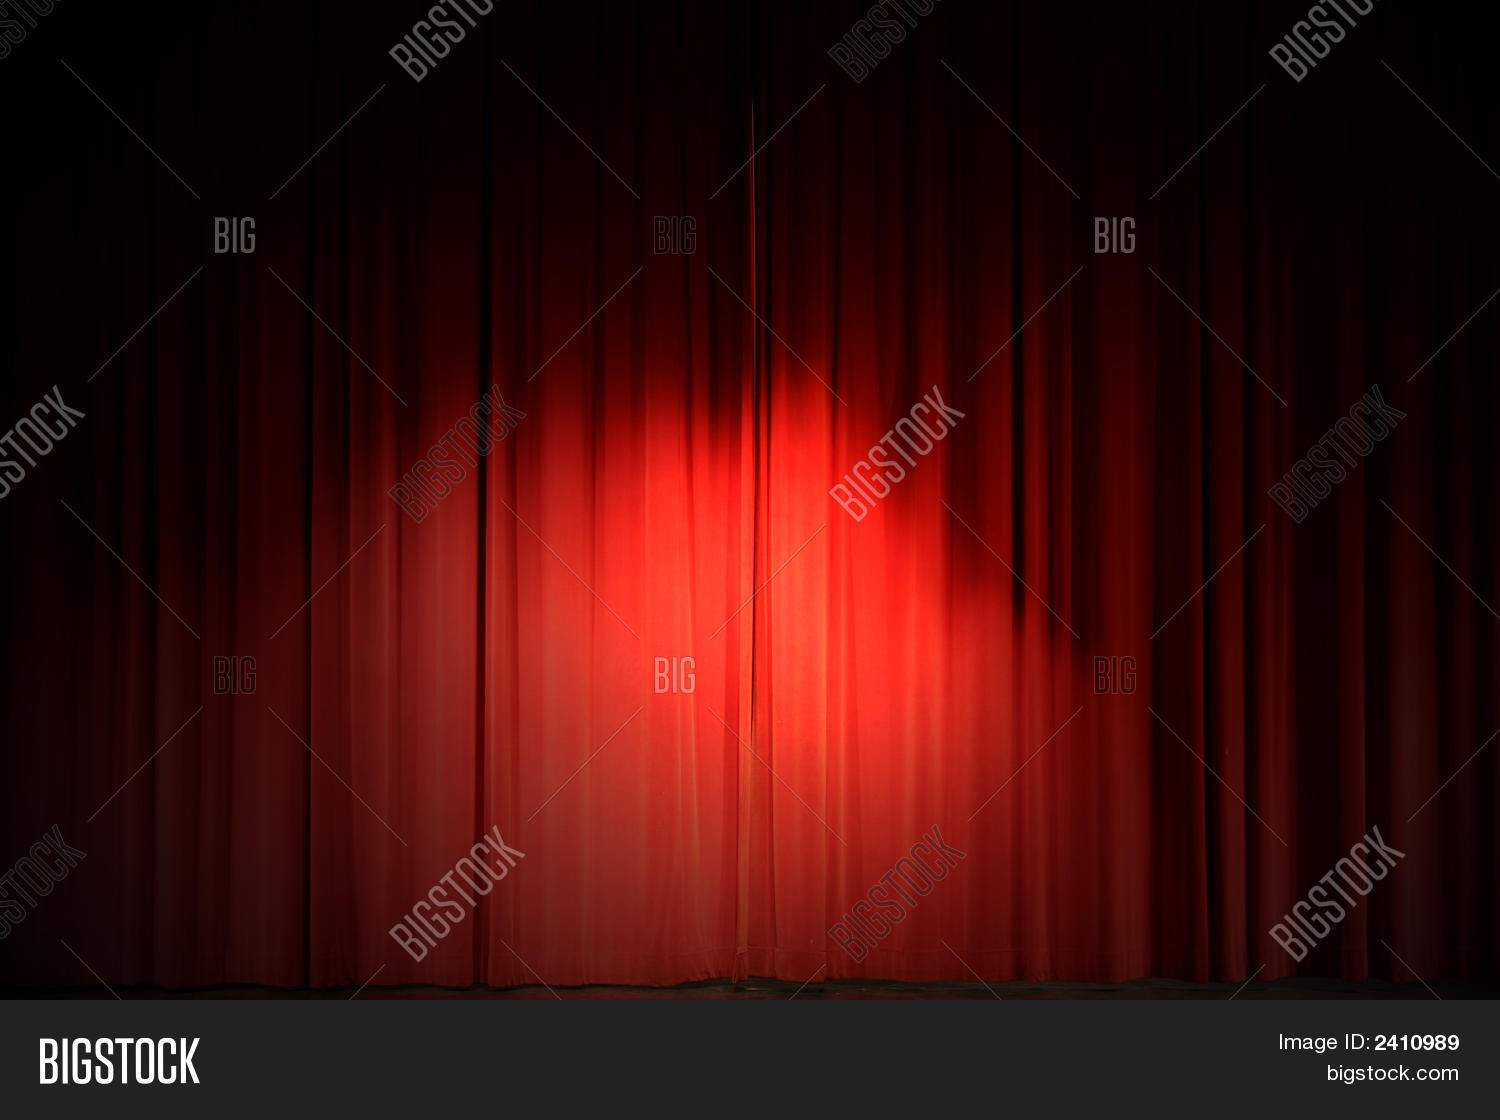 Center Stage Spotlight Image Photo Free Trial